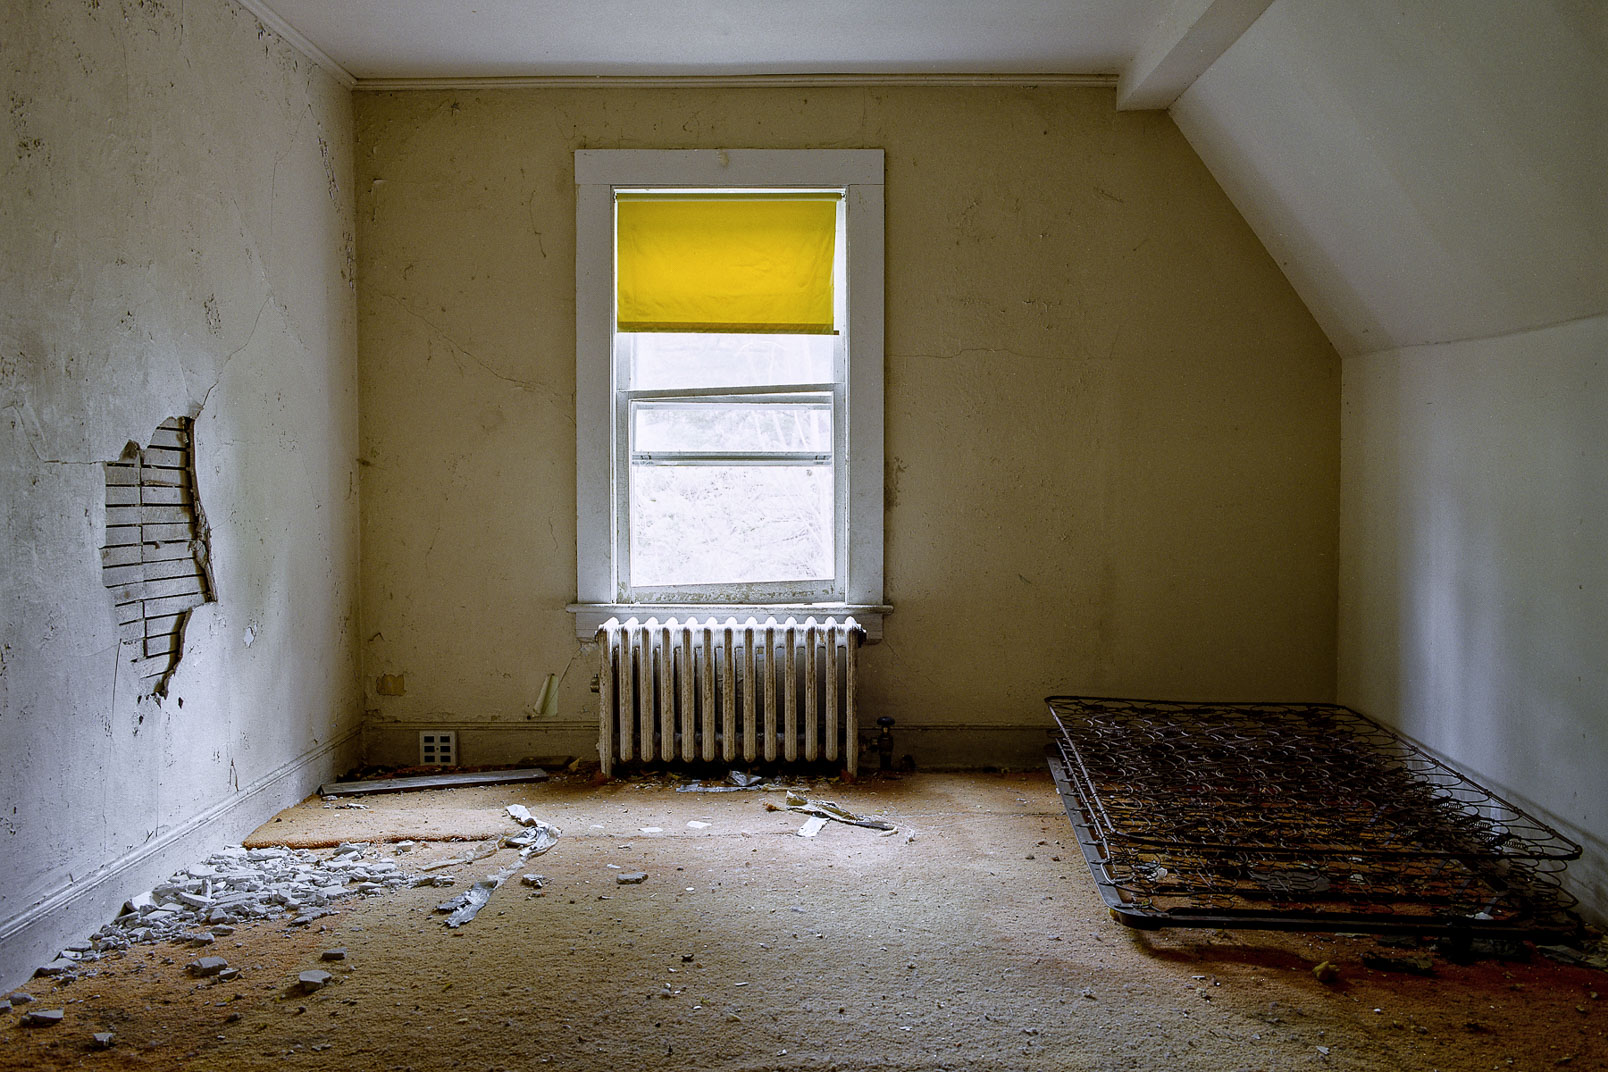 Mattress springs sitting on floor in empty bedroom with walls covered in dust and cobwebs and a yellow window shade